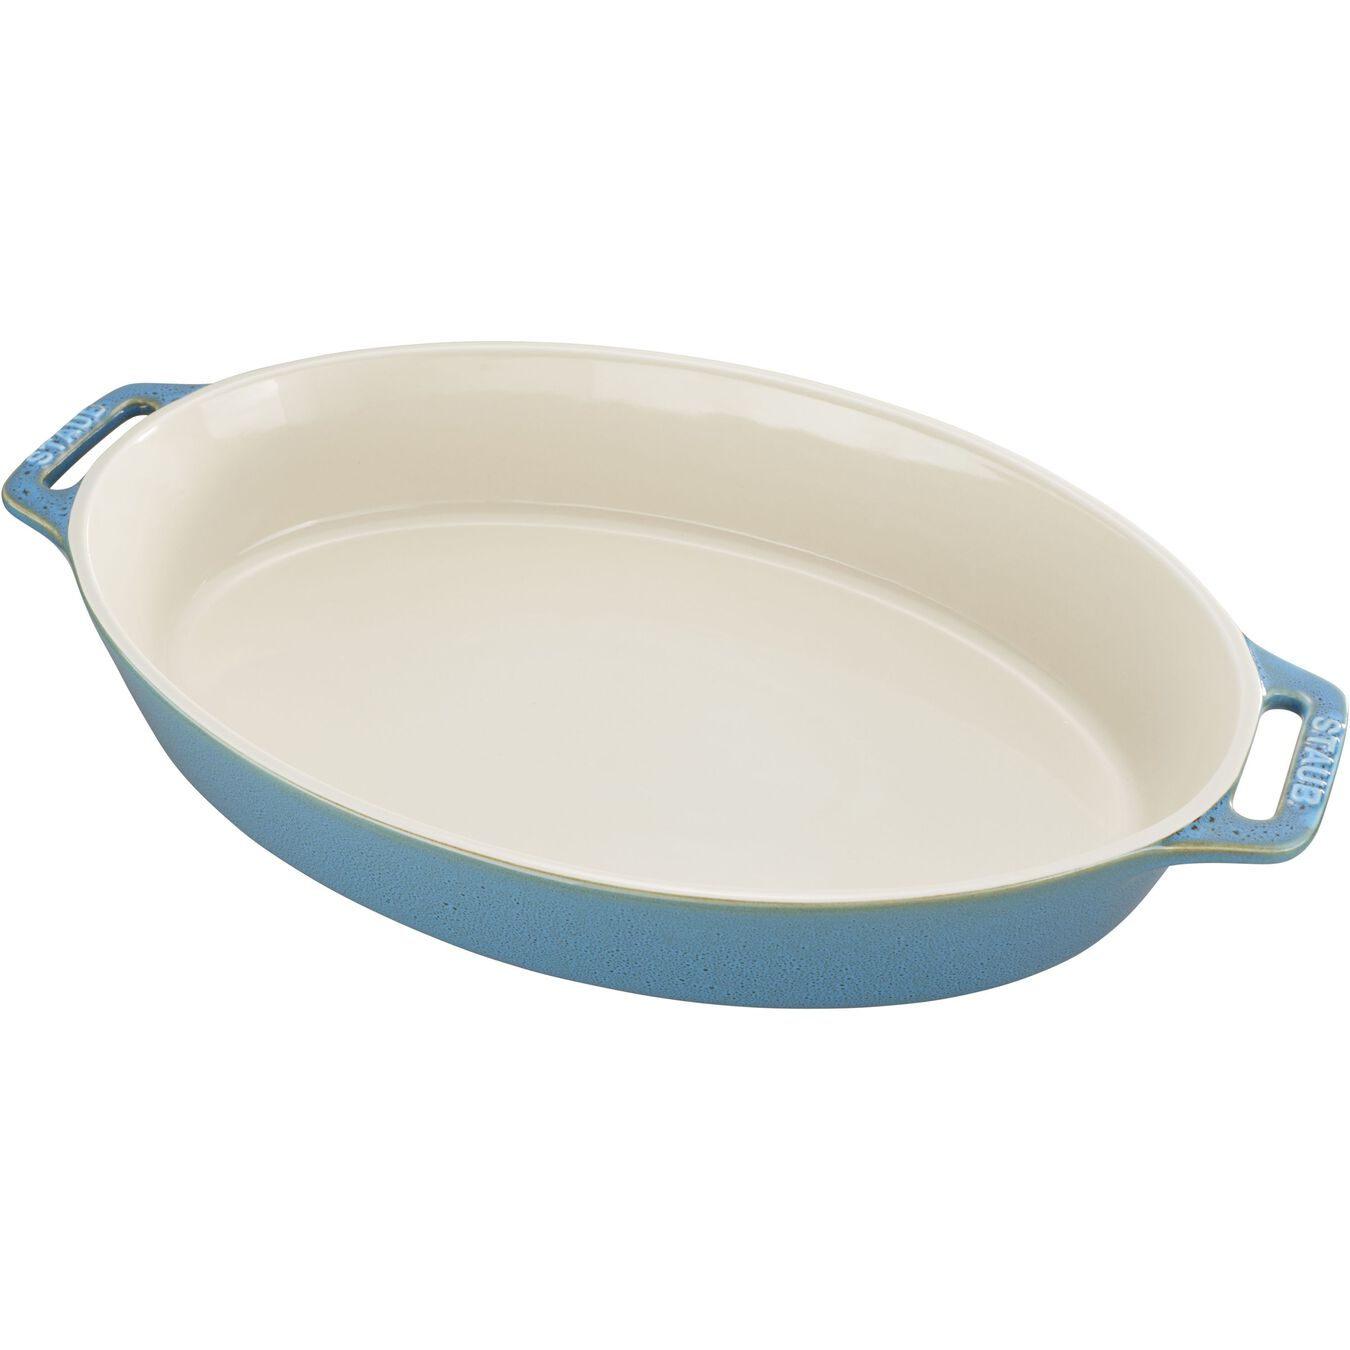 14.5-inch Oval Baking Dish - Rustic Turquoise,,large 1